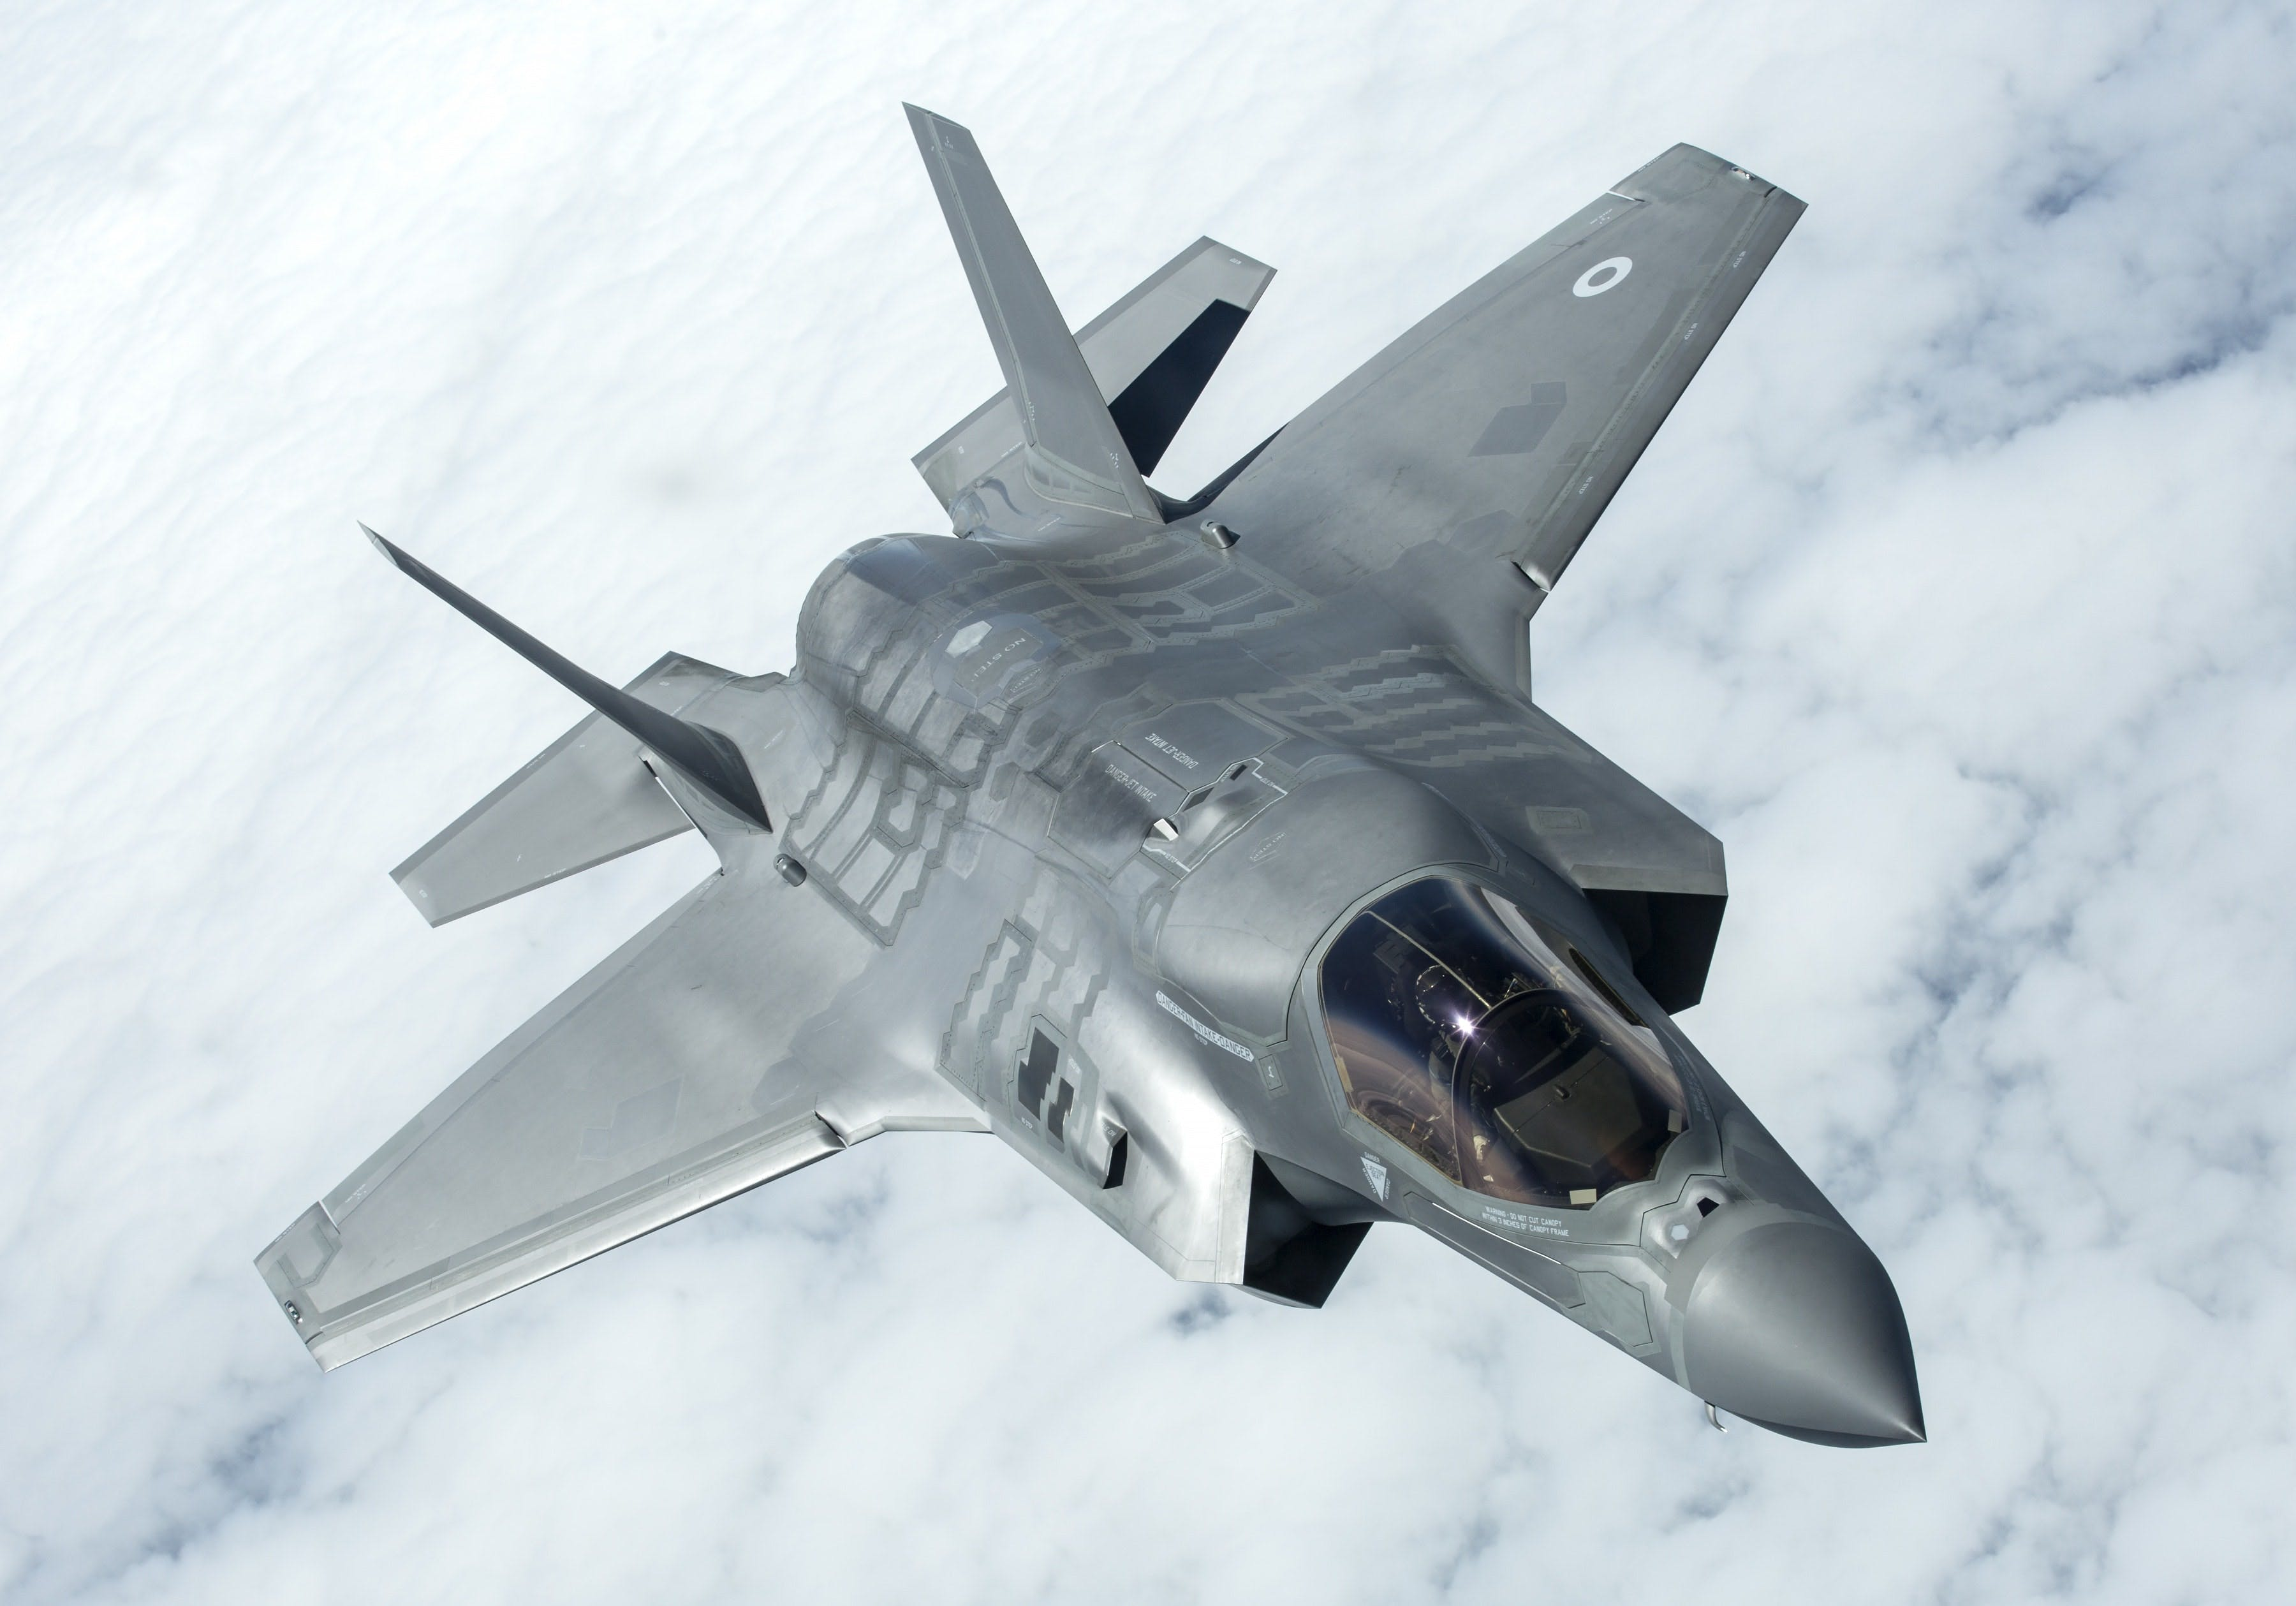 How much of the F-35 is British built?